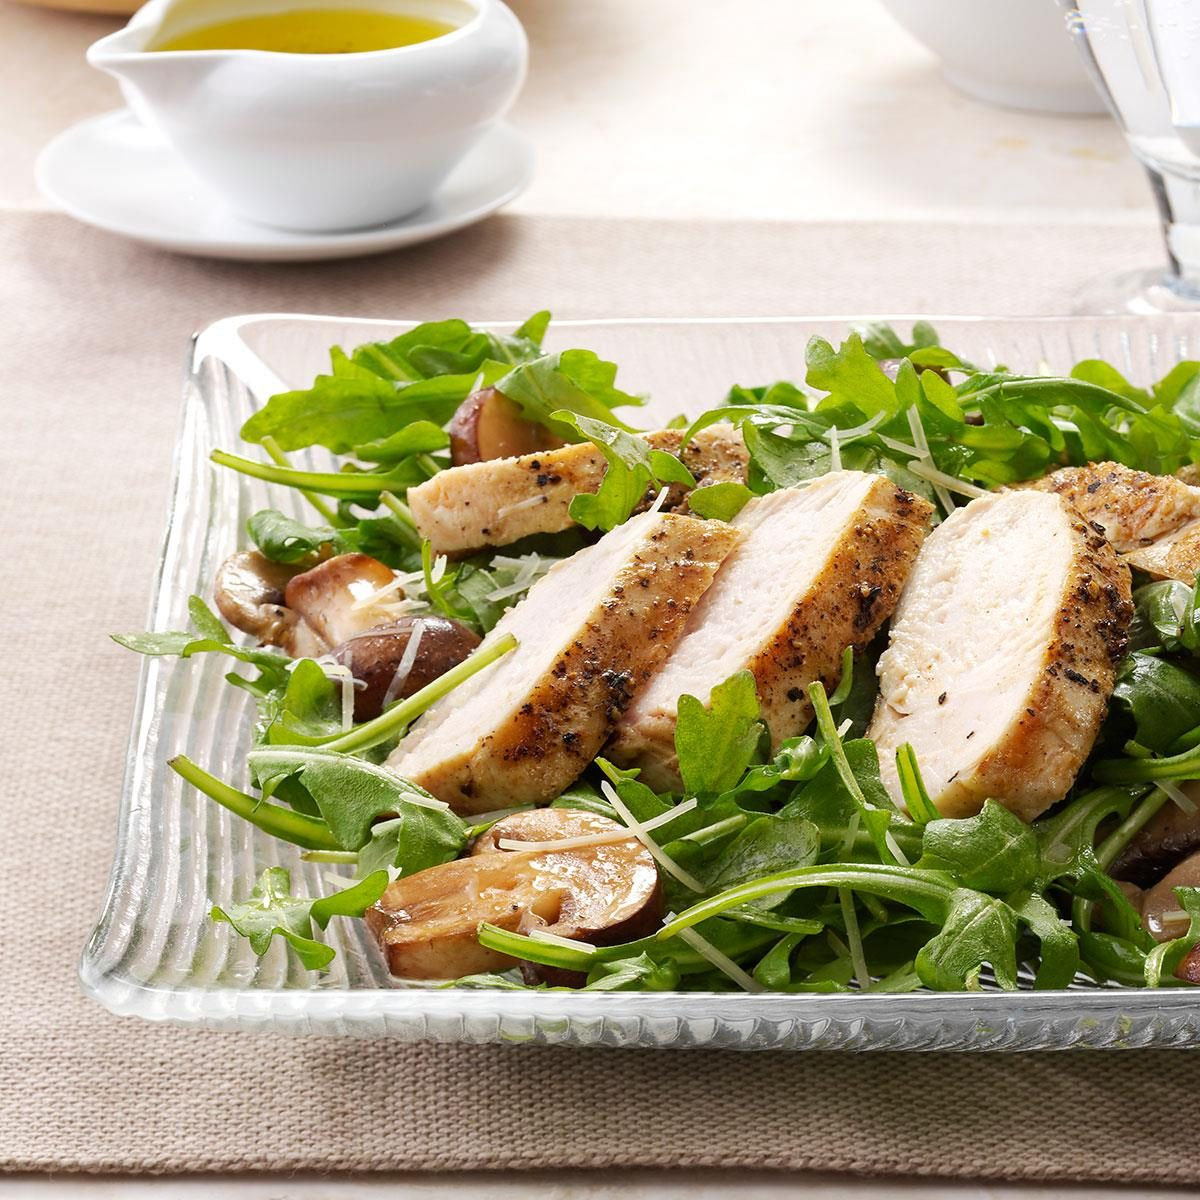 Inspired by: Texas Roadhouse's Roadhouse Grilled Chicken Salad